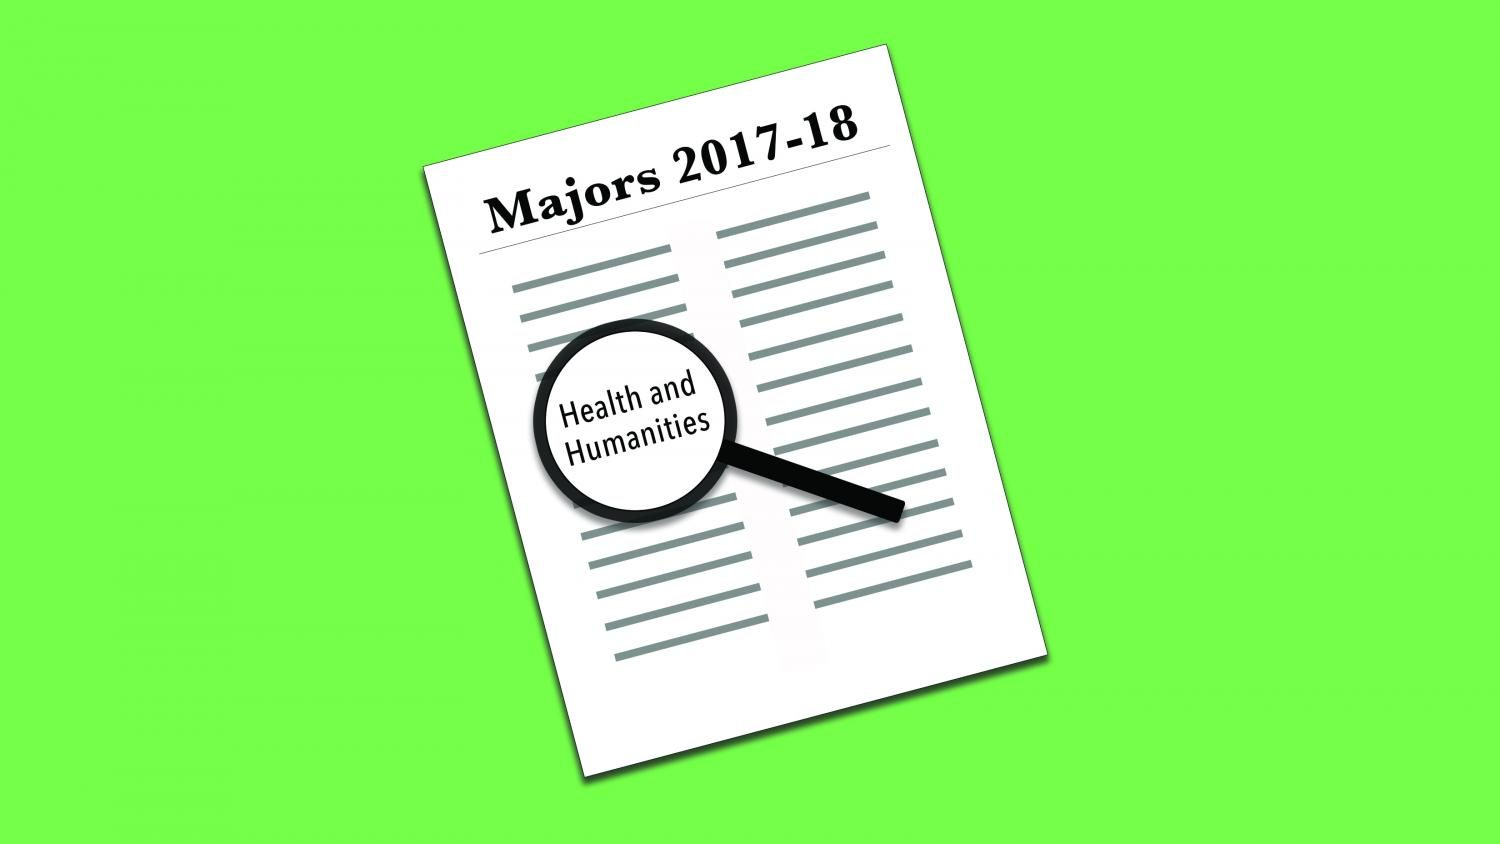 Health and humanities major added for 2017-18